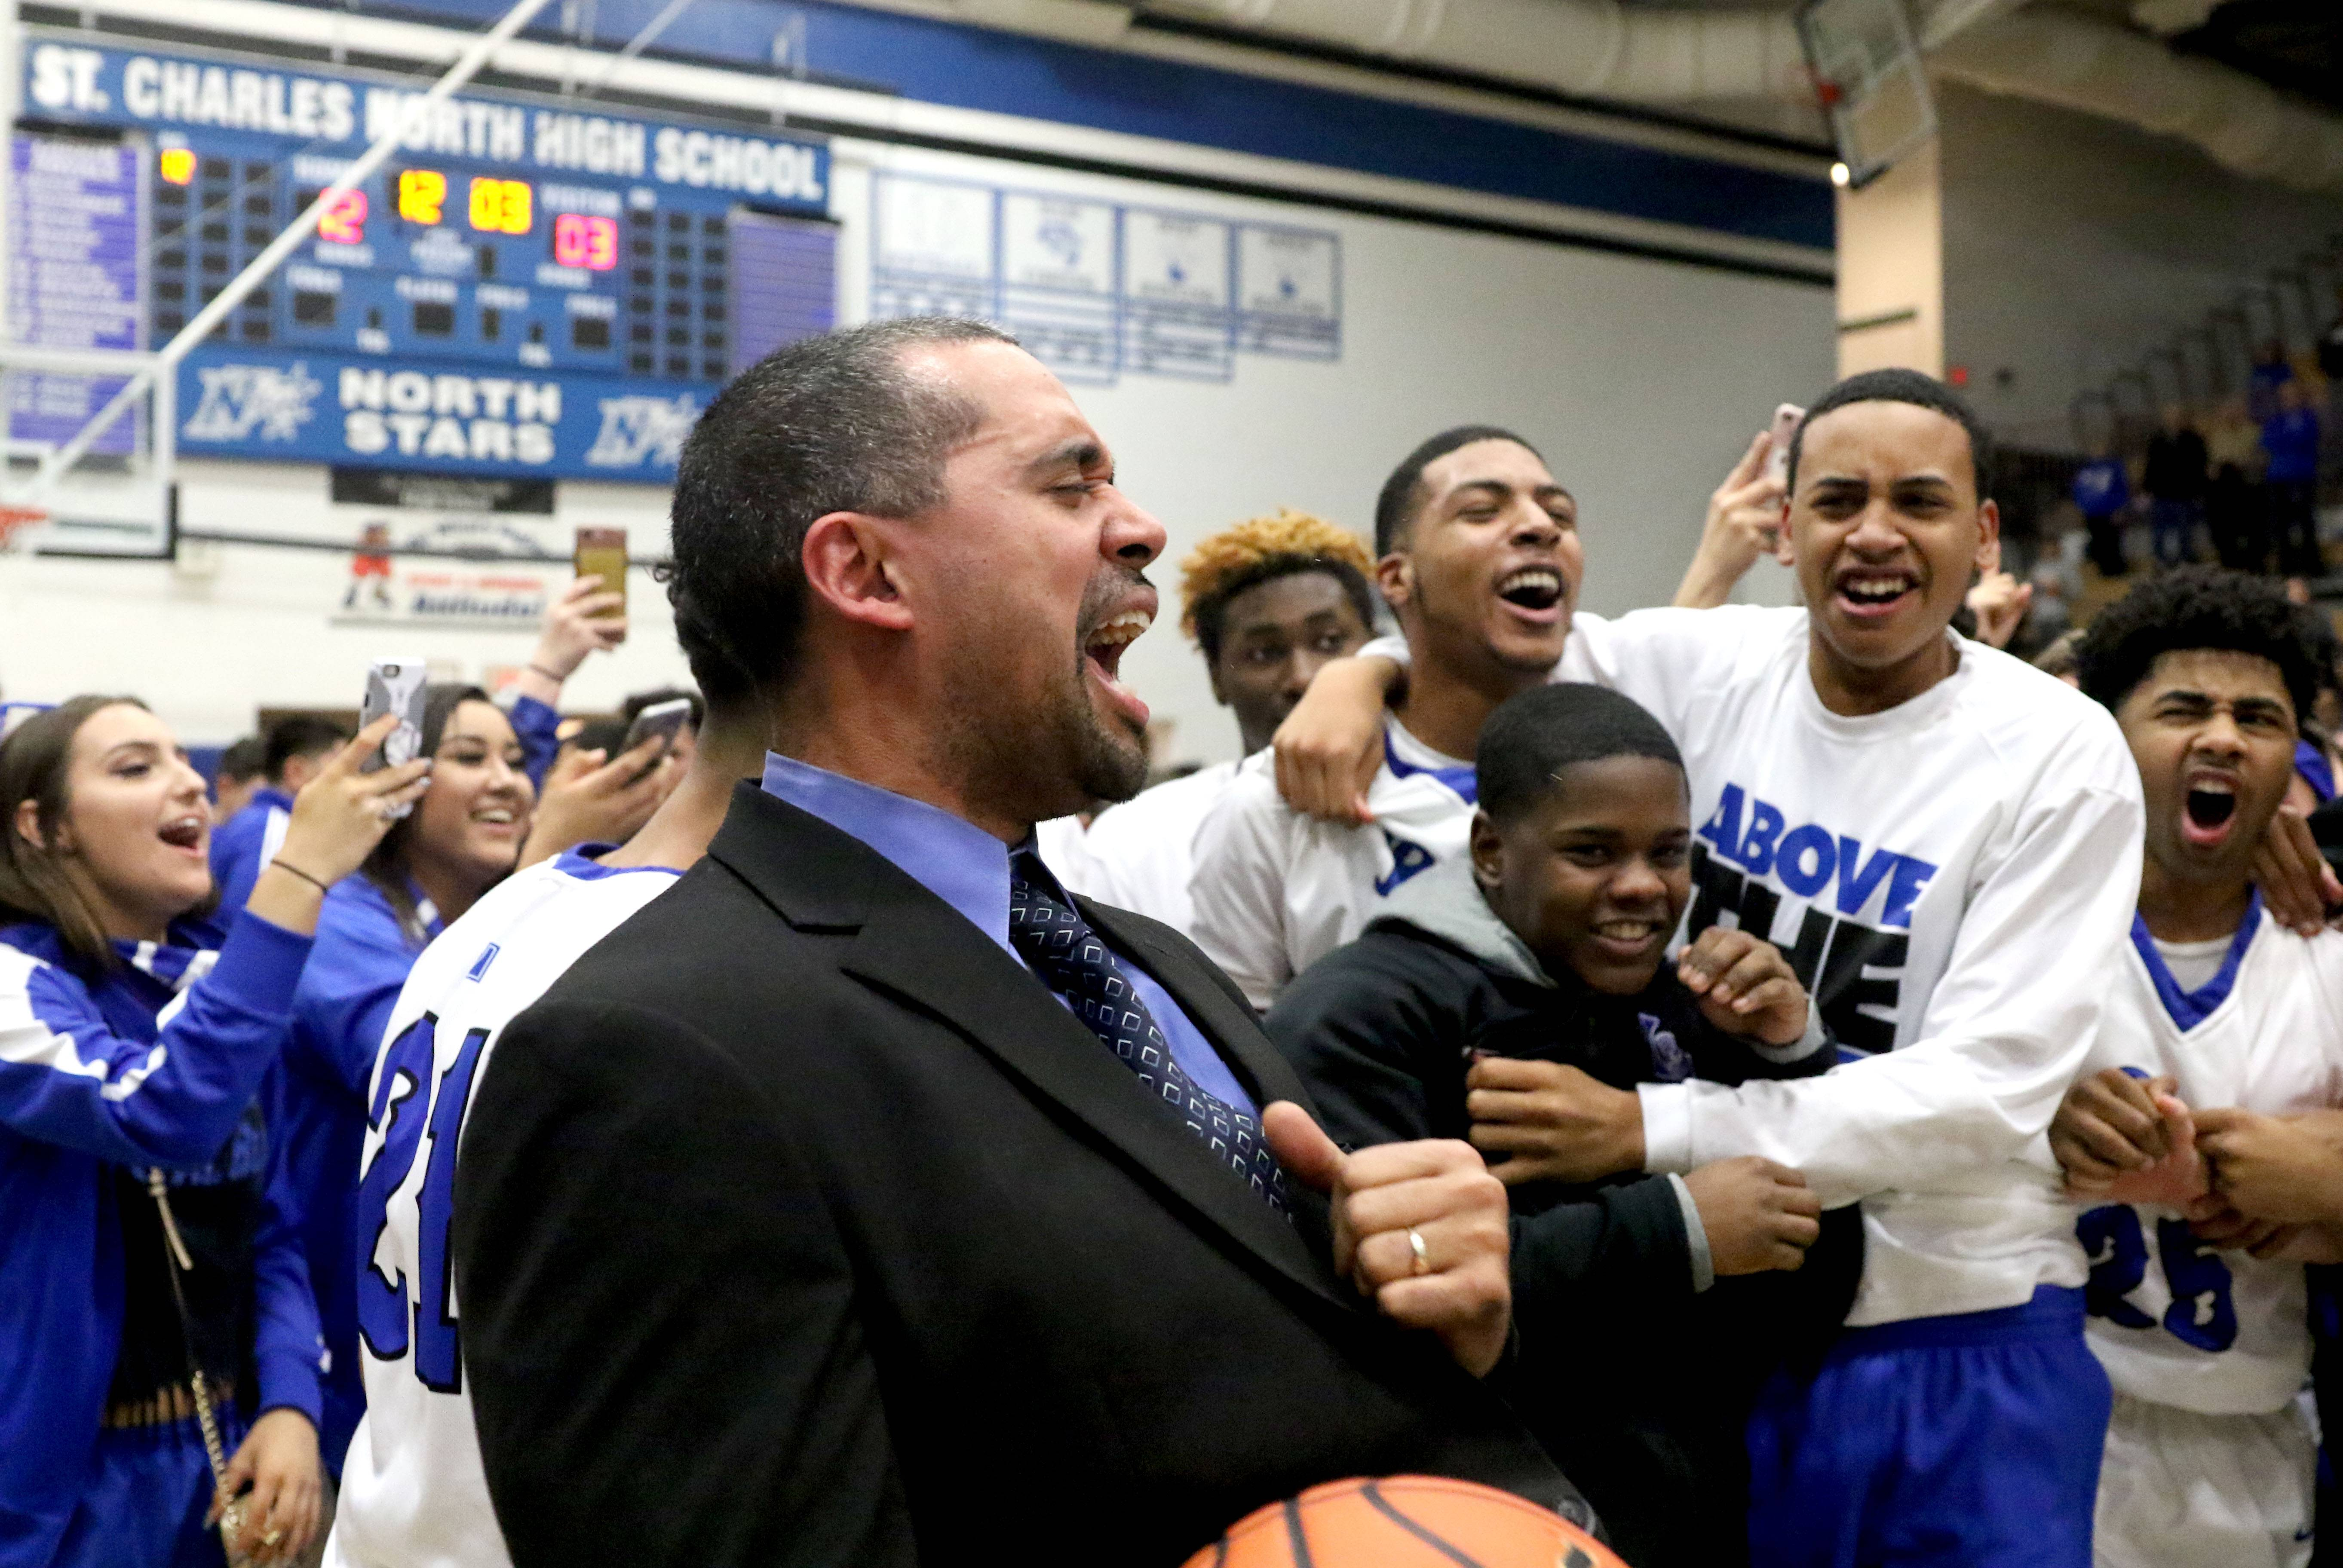 Images: St. Charles North falls to Larkin, 46-43 in Class 4A regional championship boys basketball